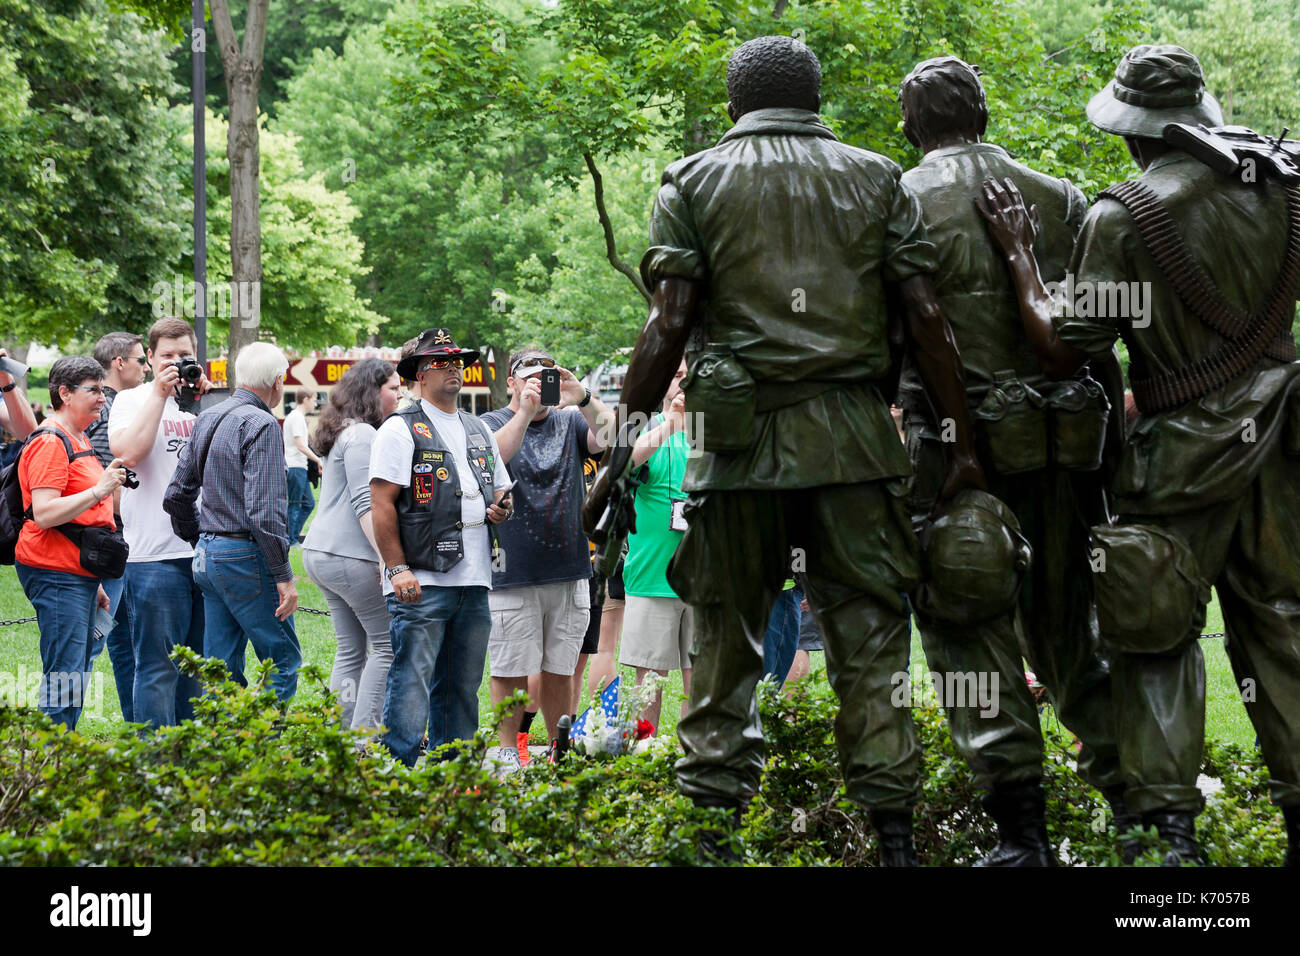 Visitors view and photograph the Three Soldiers statue at the Vietnam War  memorial - Washington,